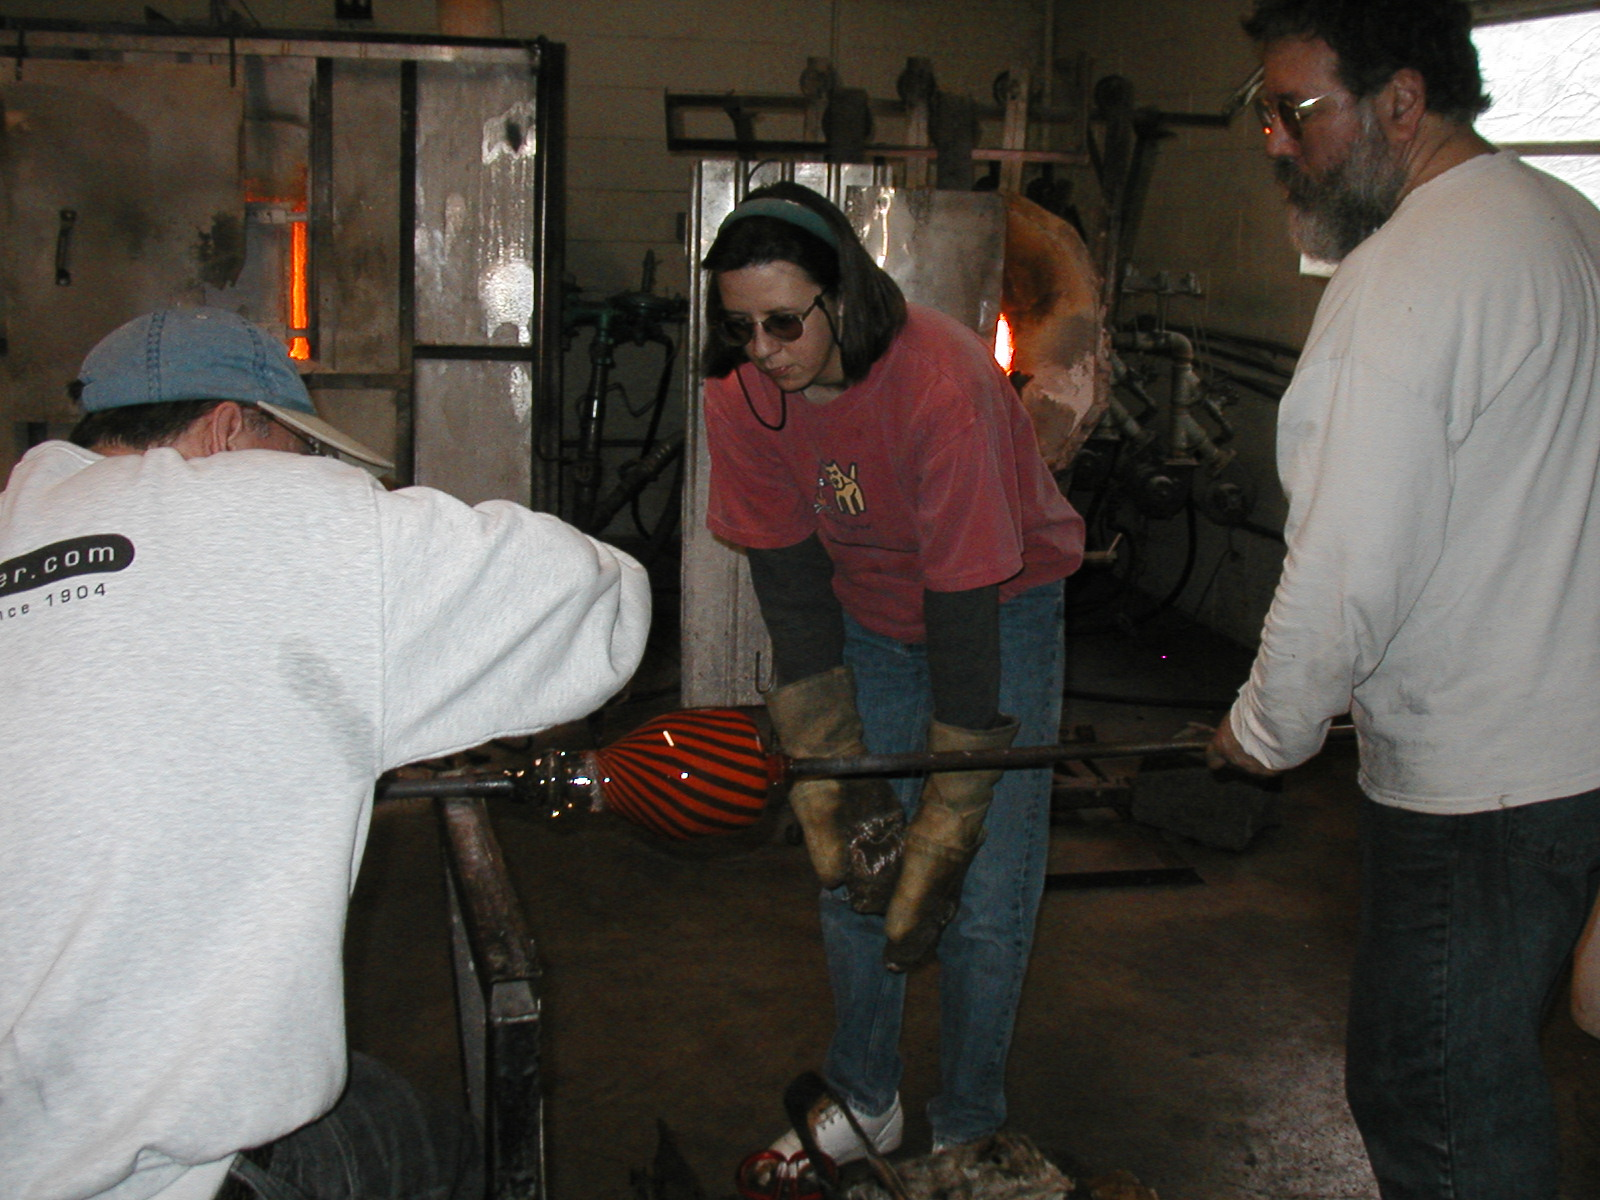 Glassblower.Info - Joel Bless Glasslight Glassblowing class January 18 2004 #110